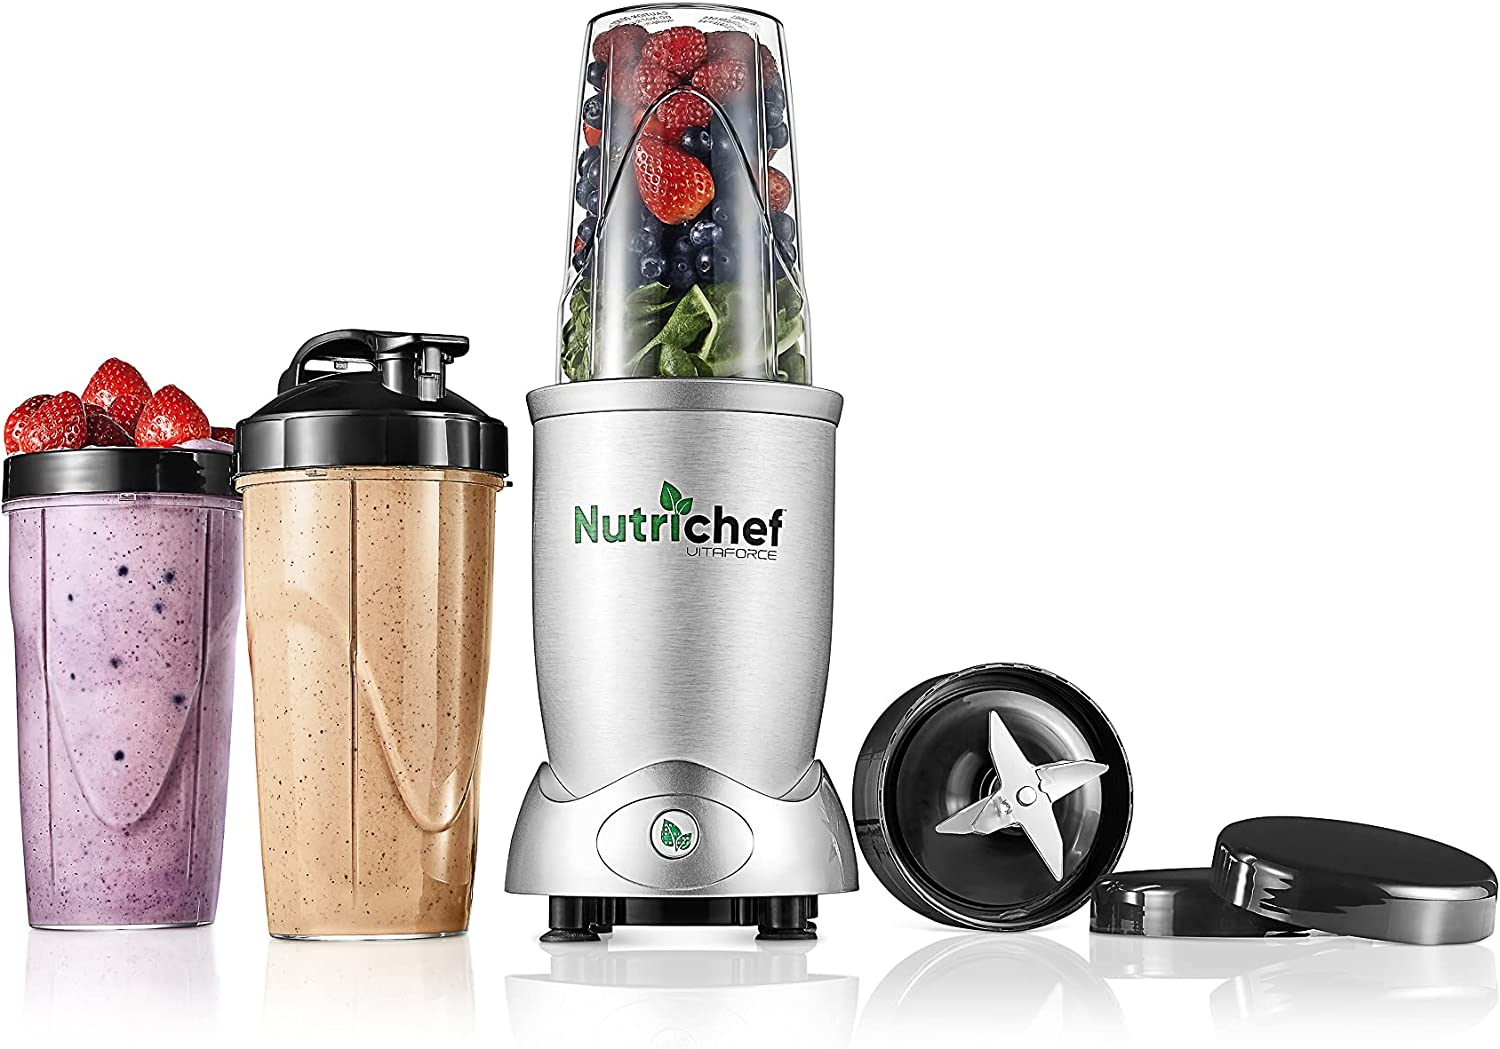 Personal Electric Single Serve Blender - 1200W Professional Kitchen Countertop Mini Blender for Shakes and Smoothies w/ Pulse Blend, Convenient Lid Cover, Portable 10 & 24 Oz Cups - NutriChef NCBL12